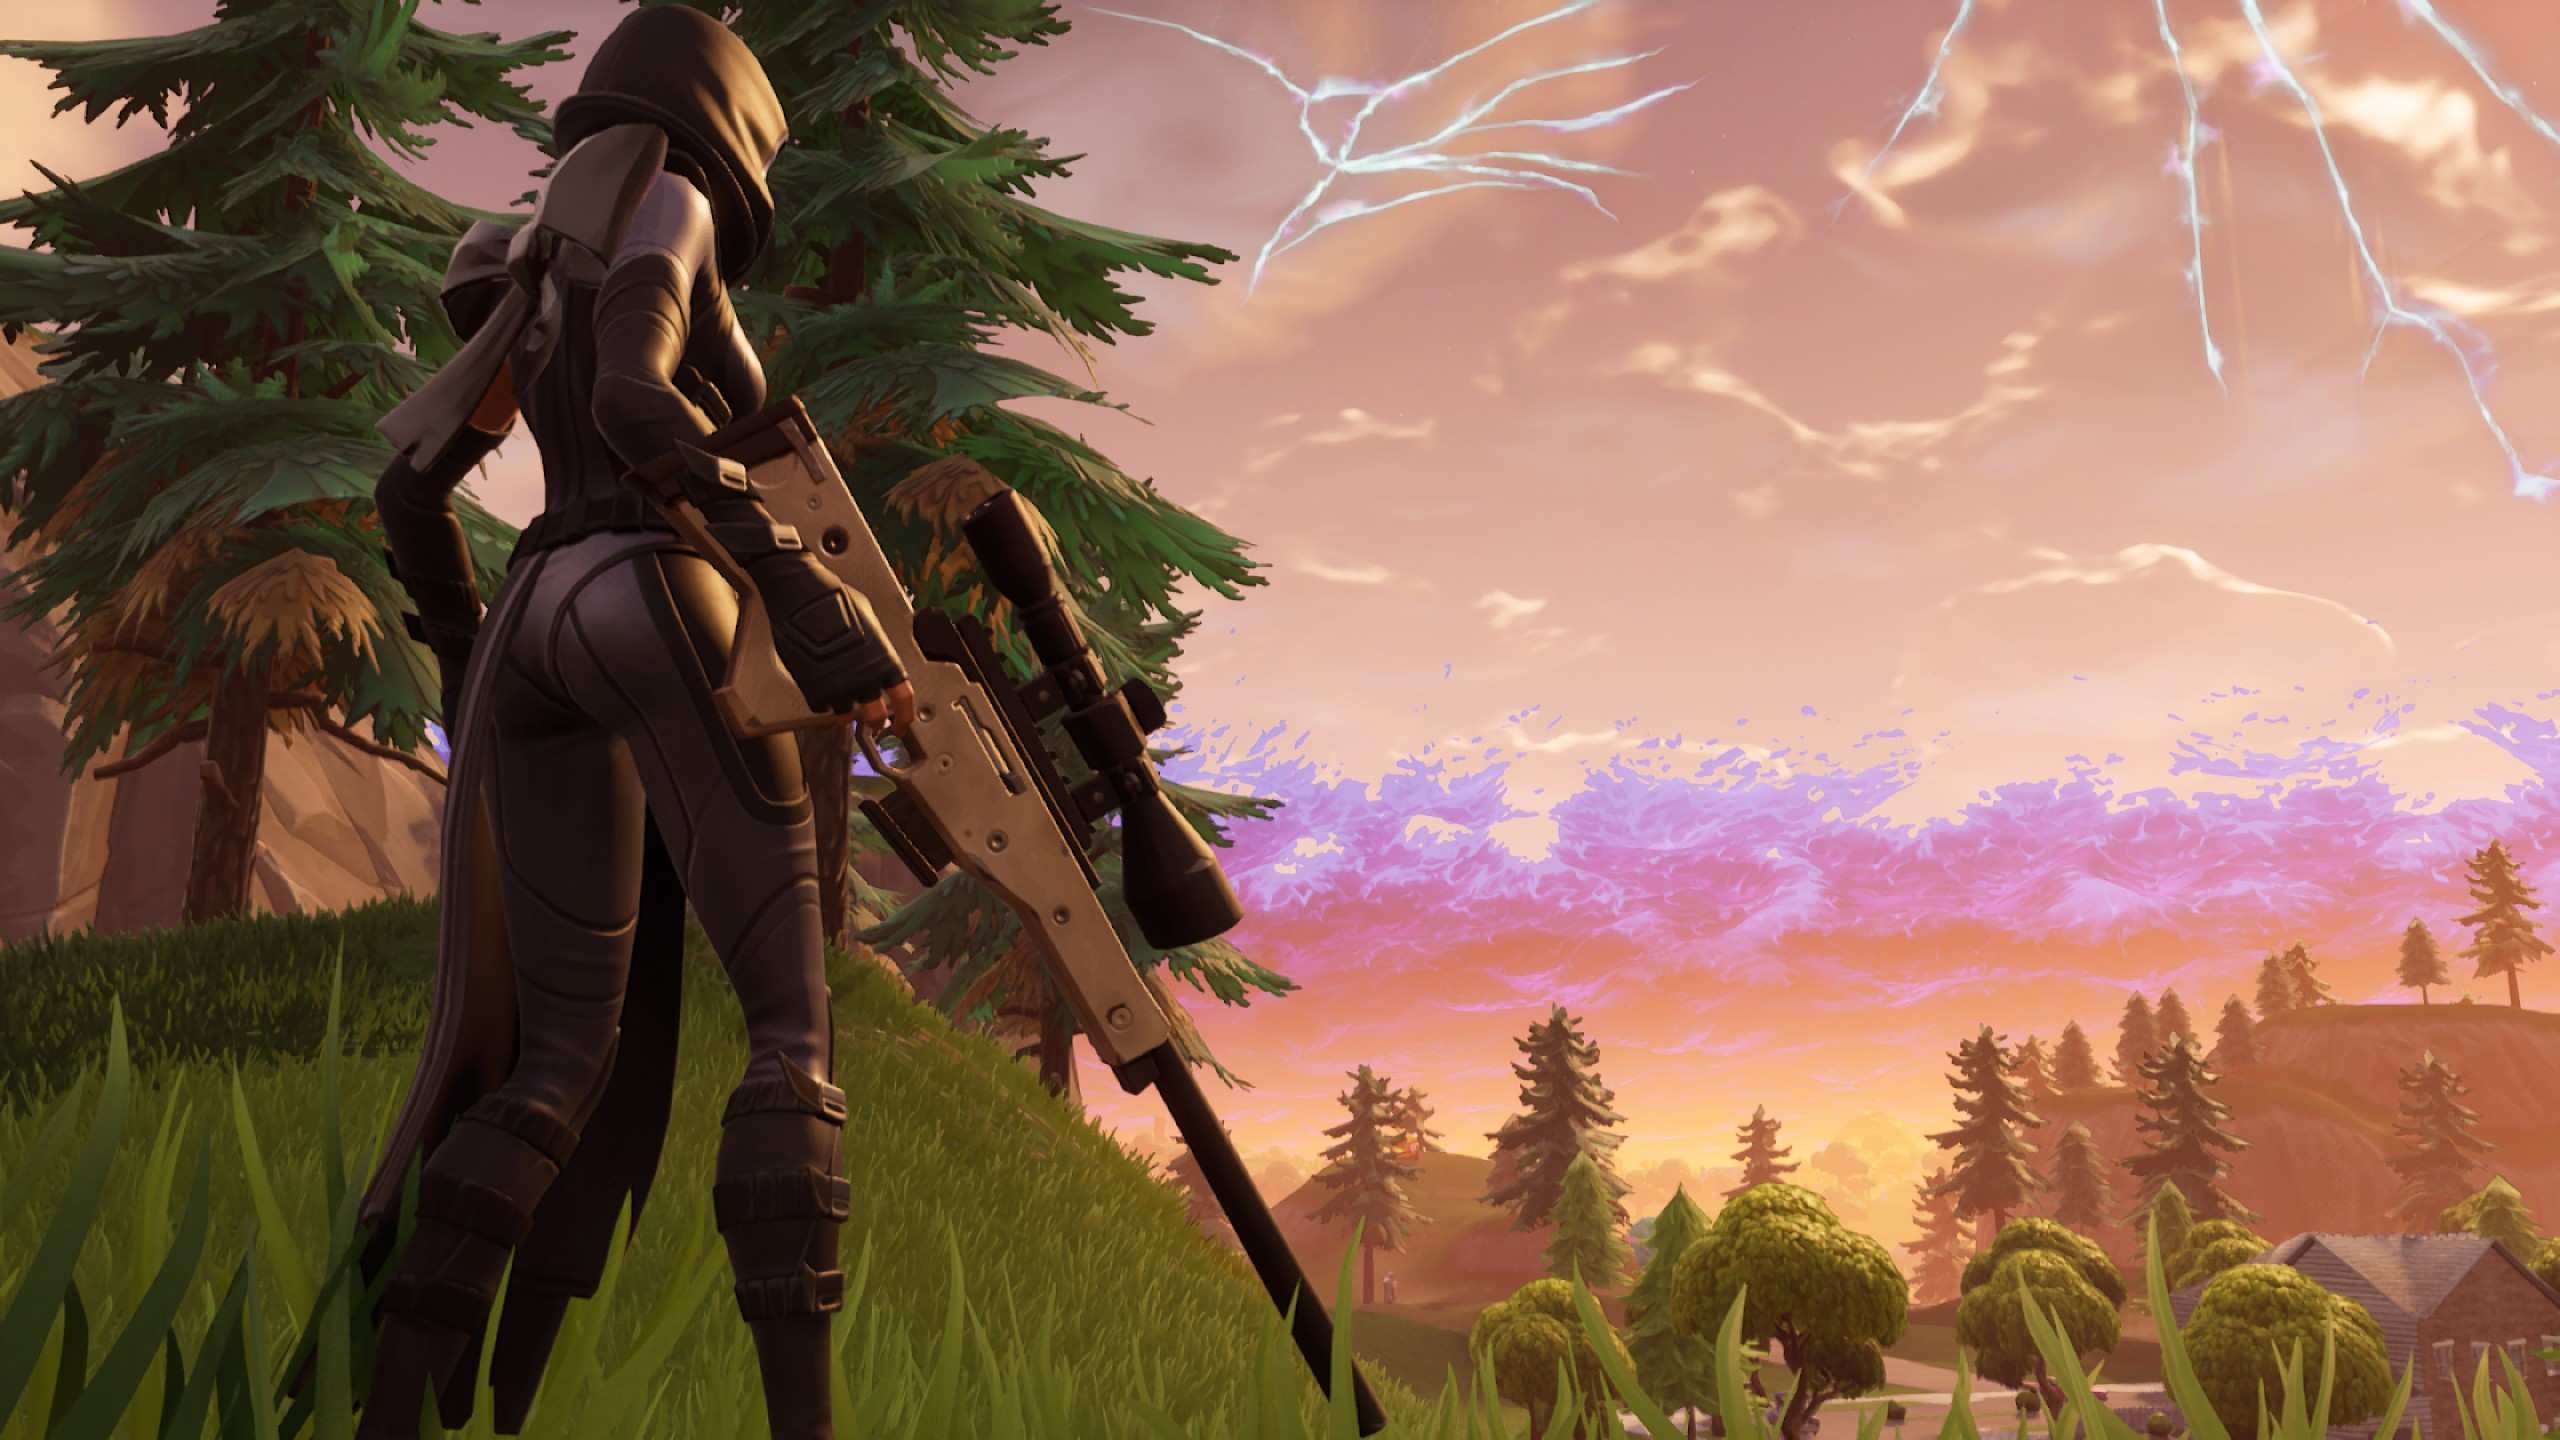 Wallpaper fortnite screenshot 4k games 19920 - 4k fortnite wallpaper ...